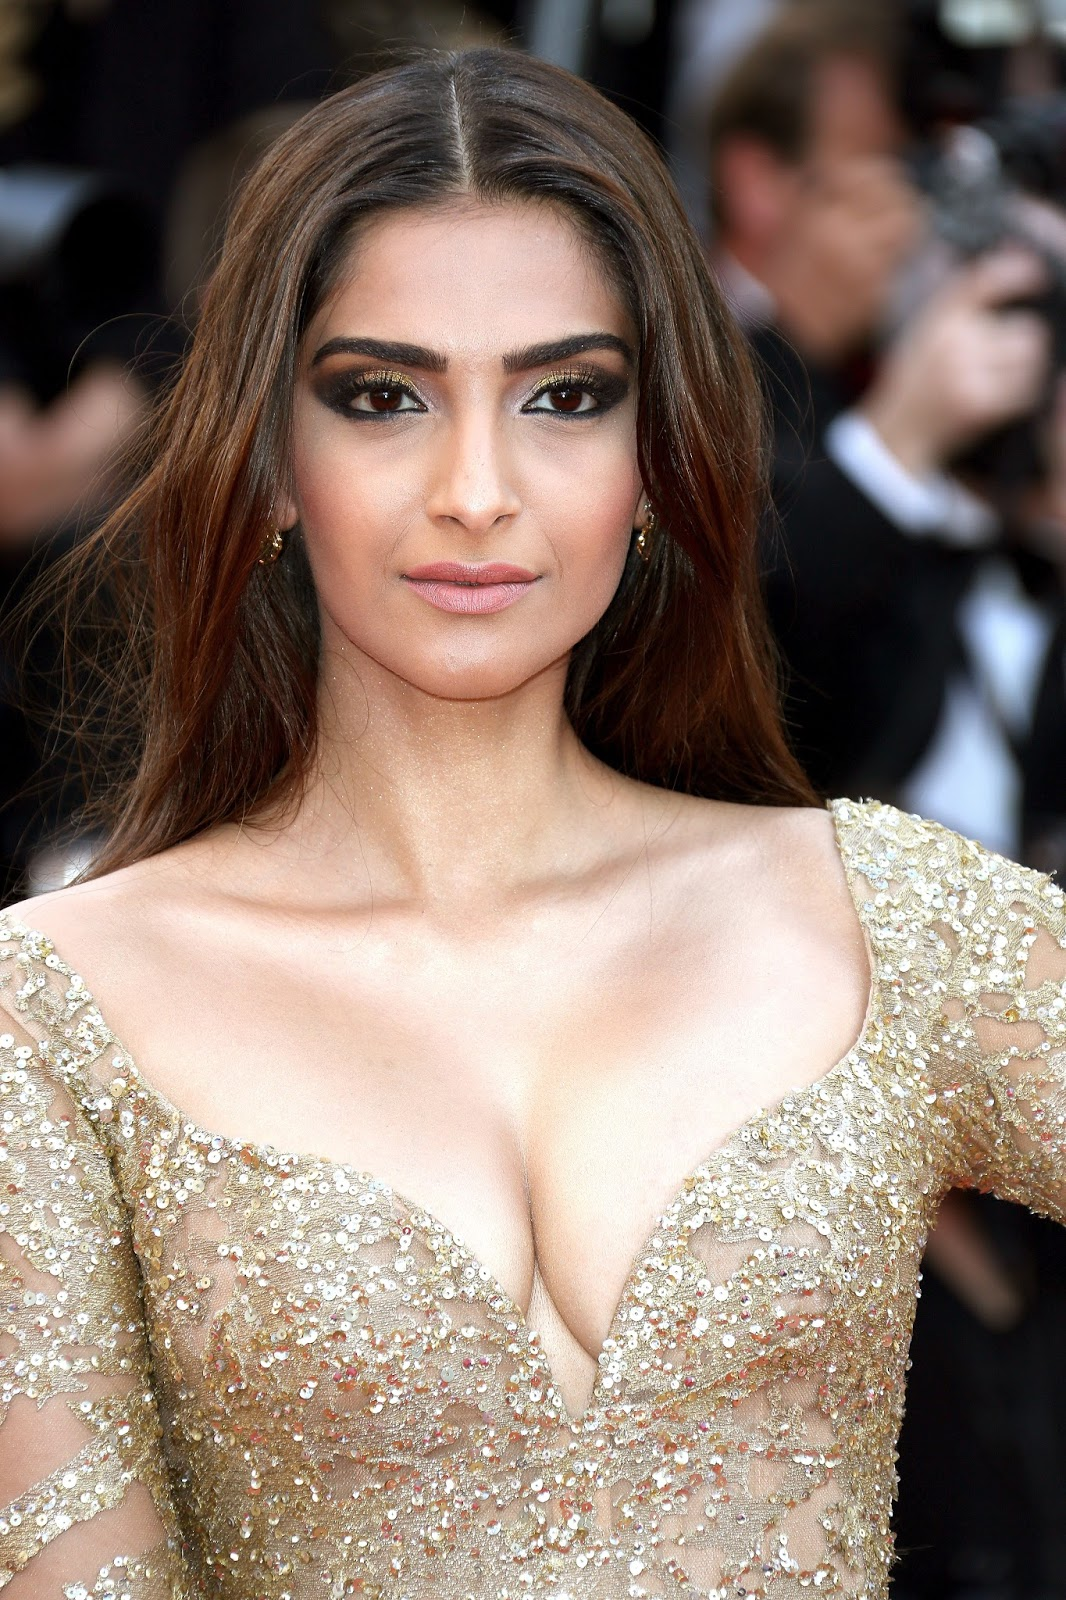 Sonam Kapoor Sexiest Cleavage Show In Elie Saab Couture At -6587